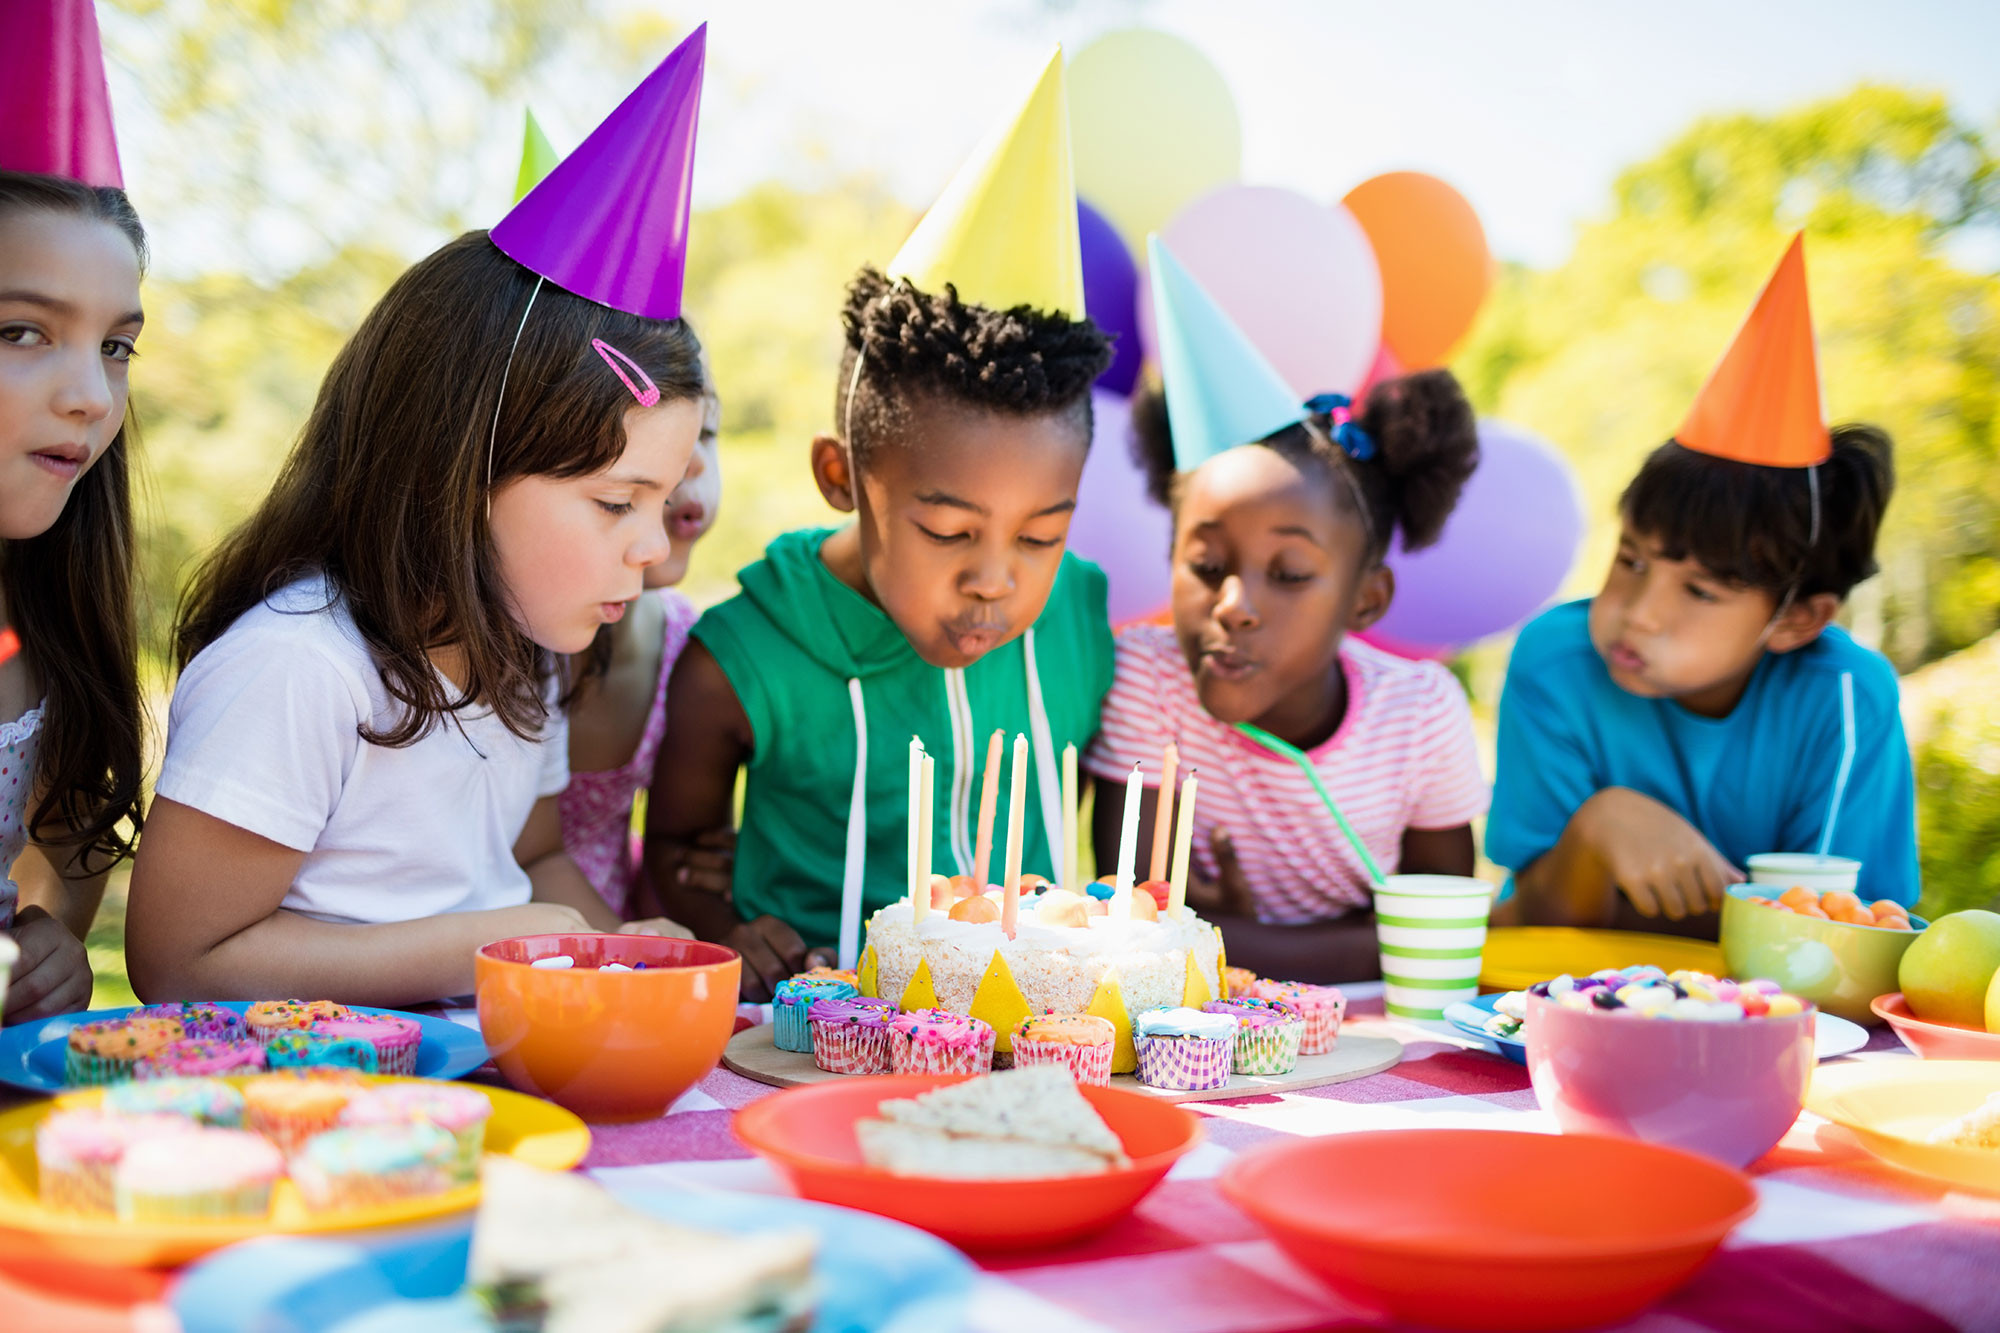 Best ideas about 1 Year Old Birthday Party Locations . Save or Pin Fabulous Places in Houston to Hold Your Tween's Birthday Now.